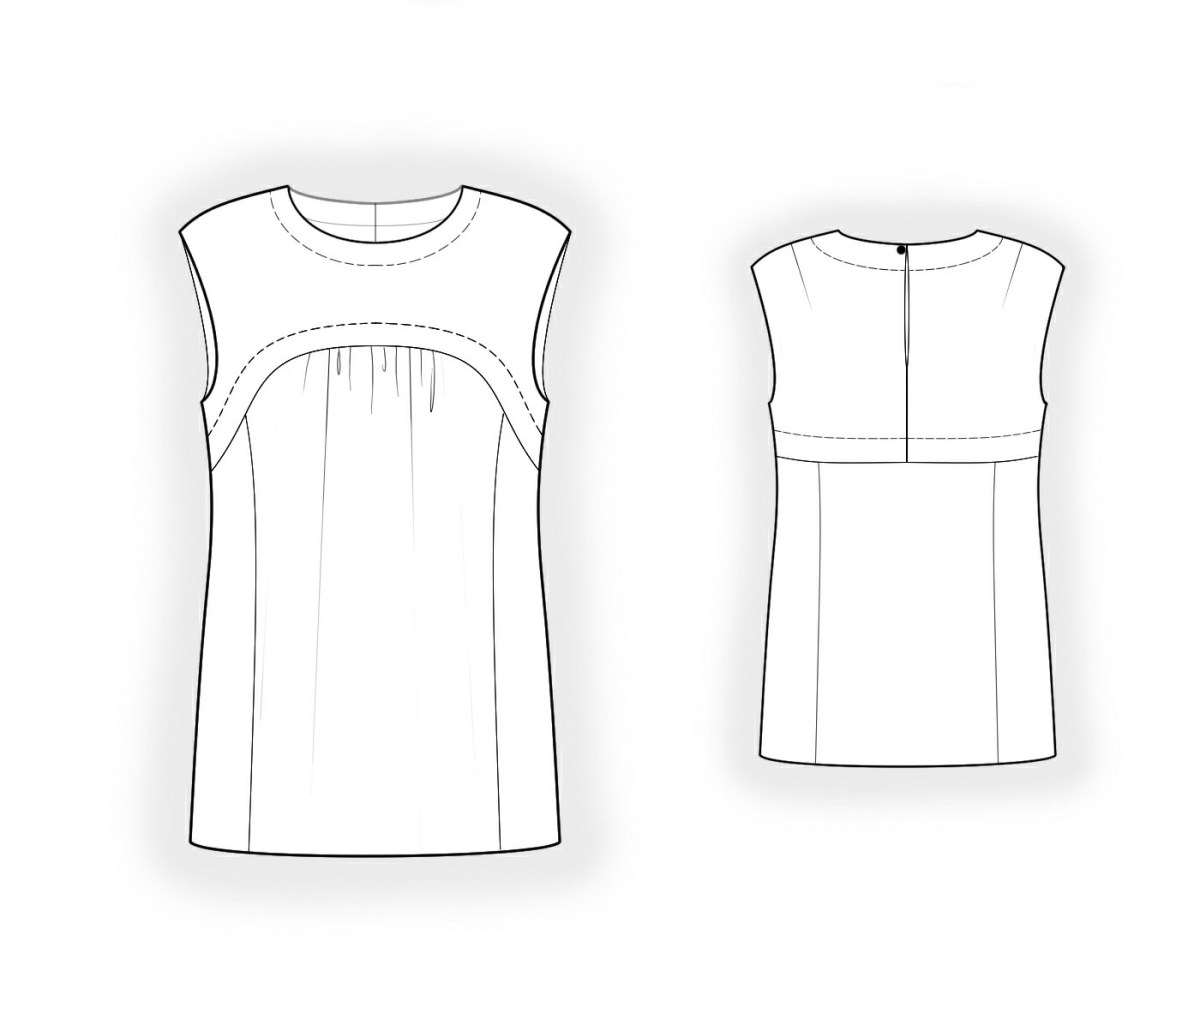 Blouse Sewing Pattern Free Blouse Sewing Pattern 4109 Made To Measure Sewing Pattern From